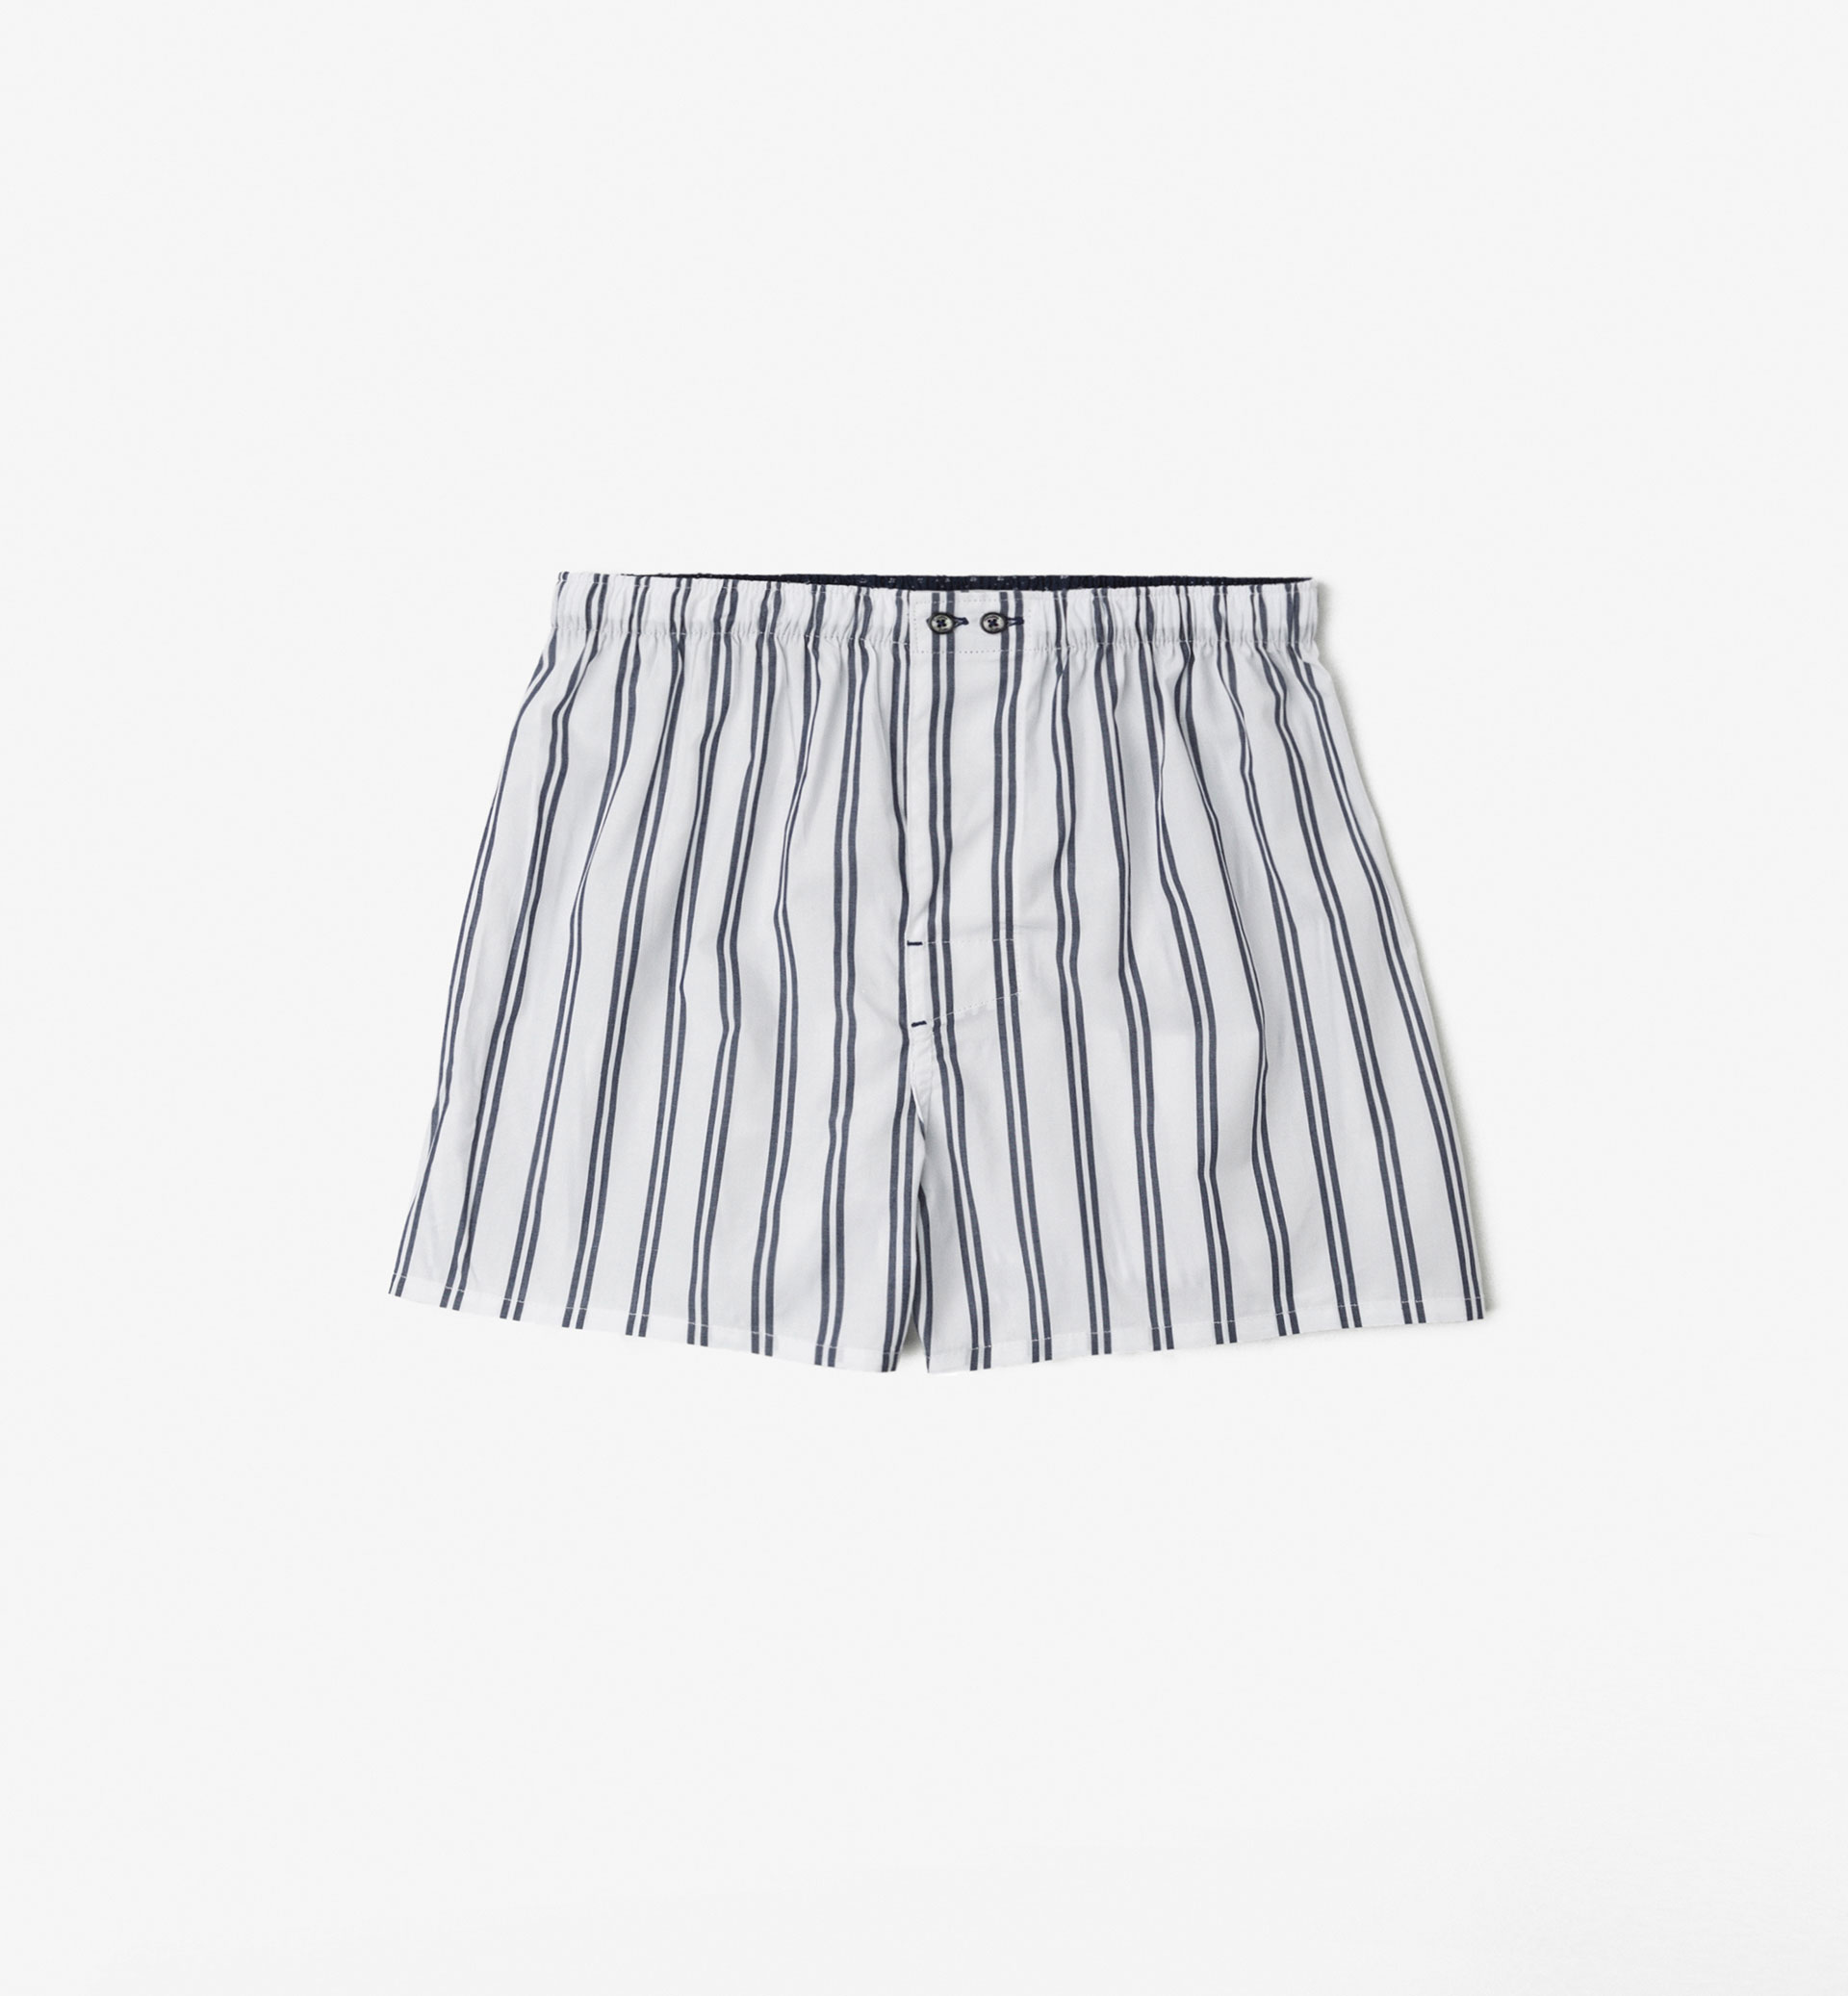 DOUBLE STRIPED UNDERPANTS